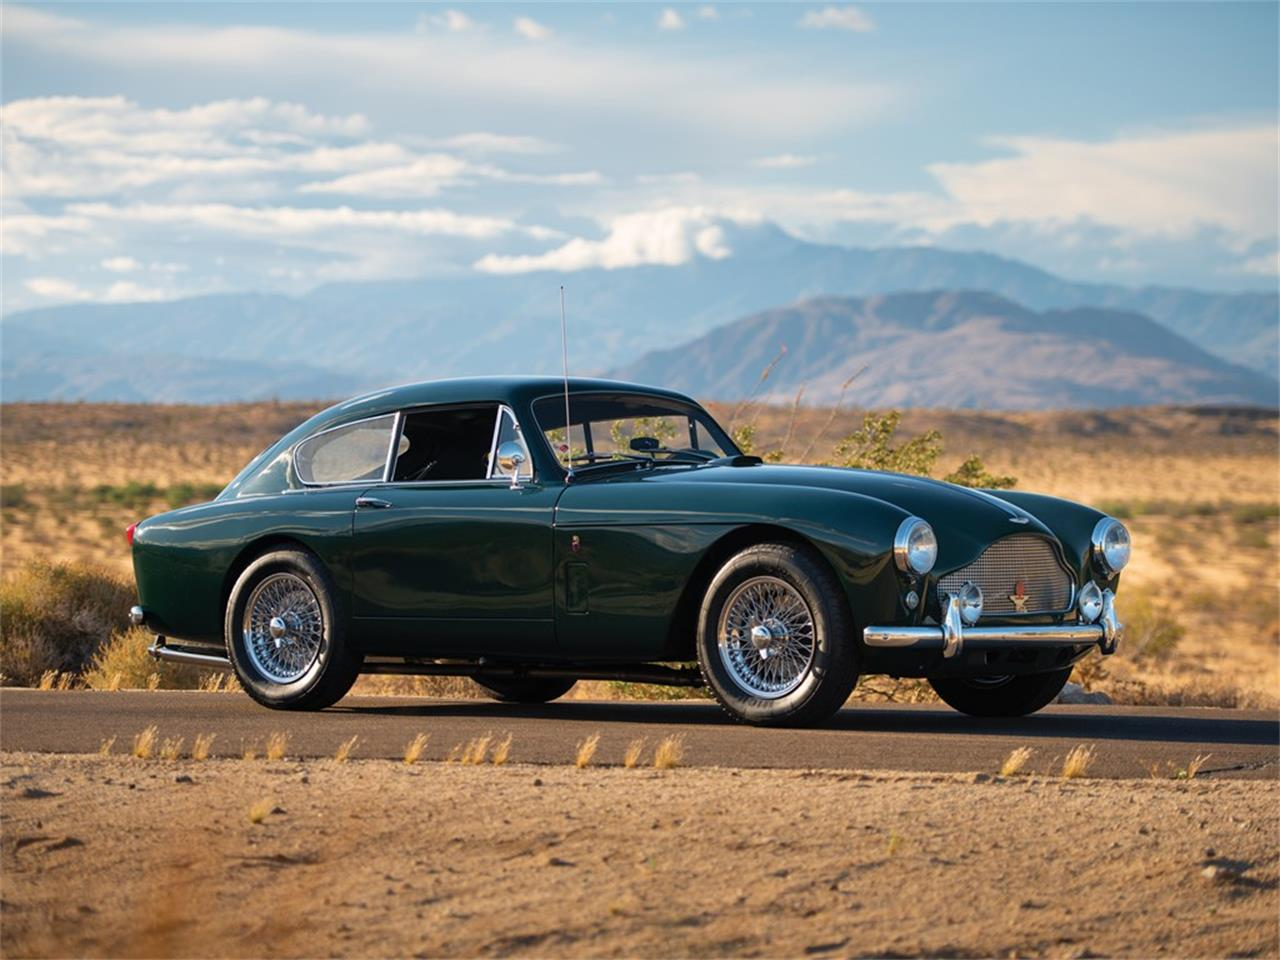 Large Picture of Classic '57 Aston Martin DB 2/4 MKIII Auction Vehicle Offered by RM Sotheby's - Q4GZ